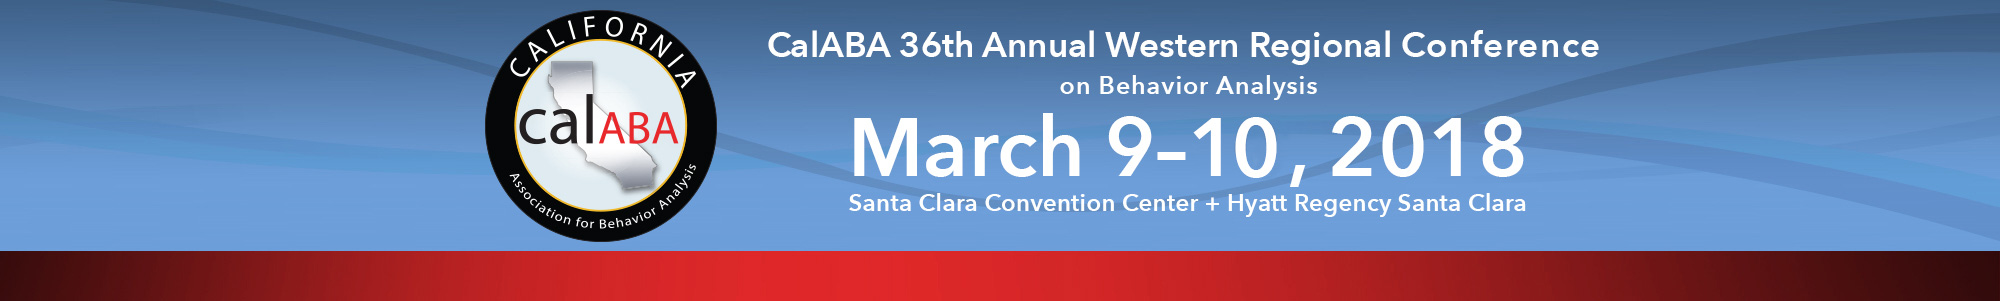 CalABA 37th Annual Western Regional Conference on Behavior Analysis